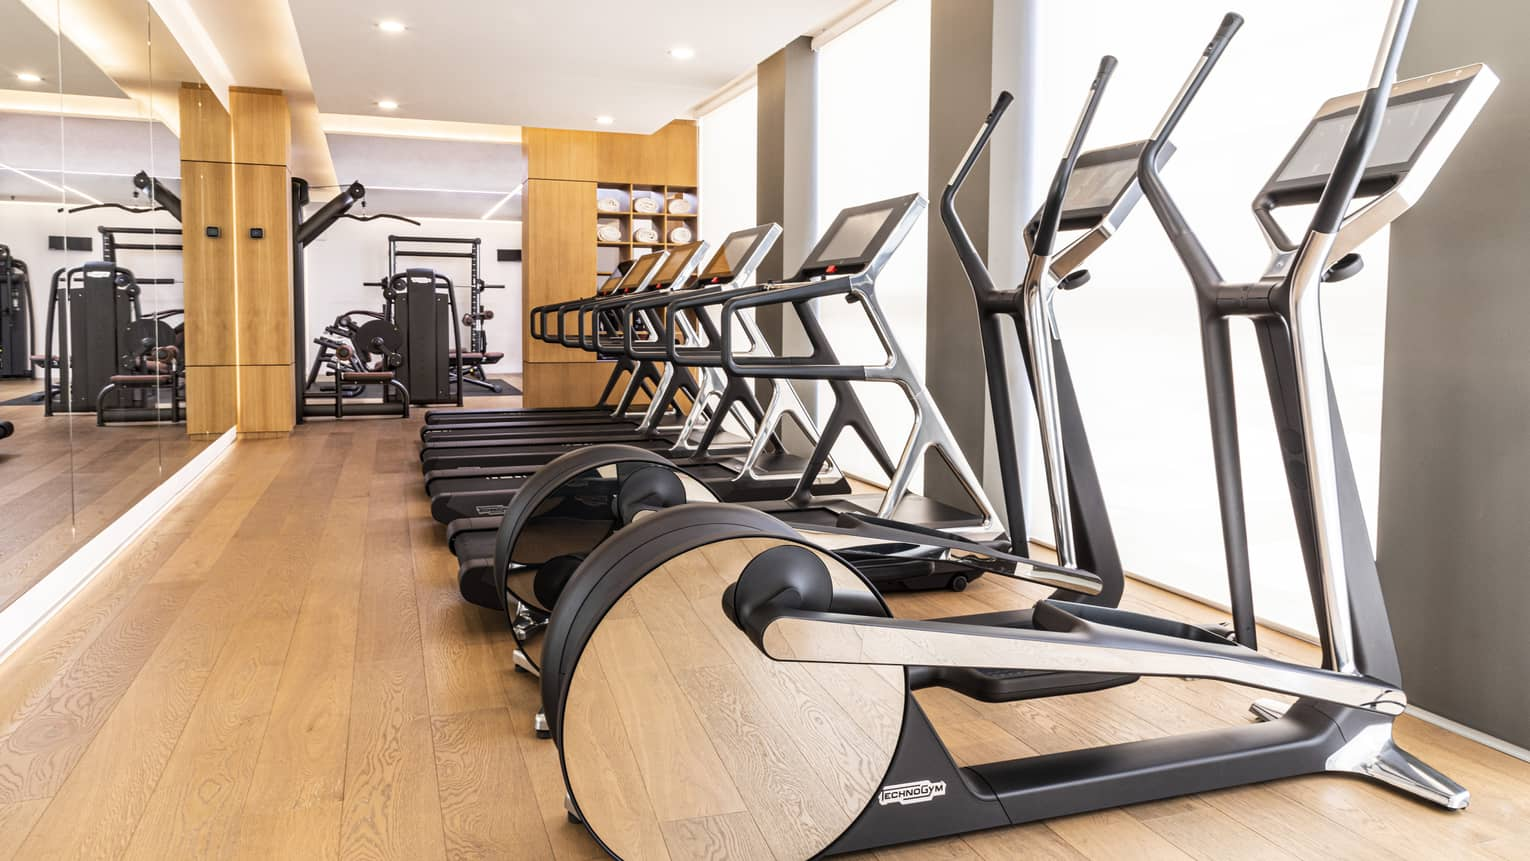 Indoor gym with a row of treadmills and elliptical machines facing windows